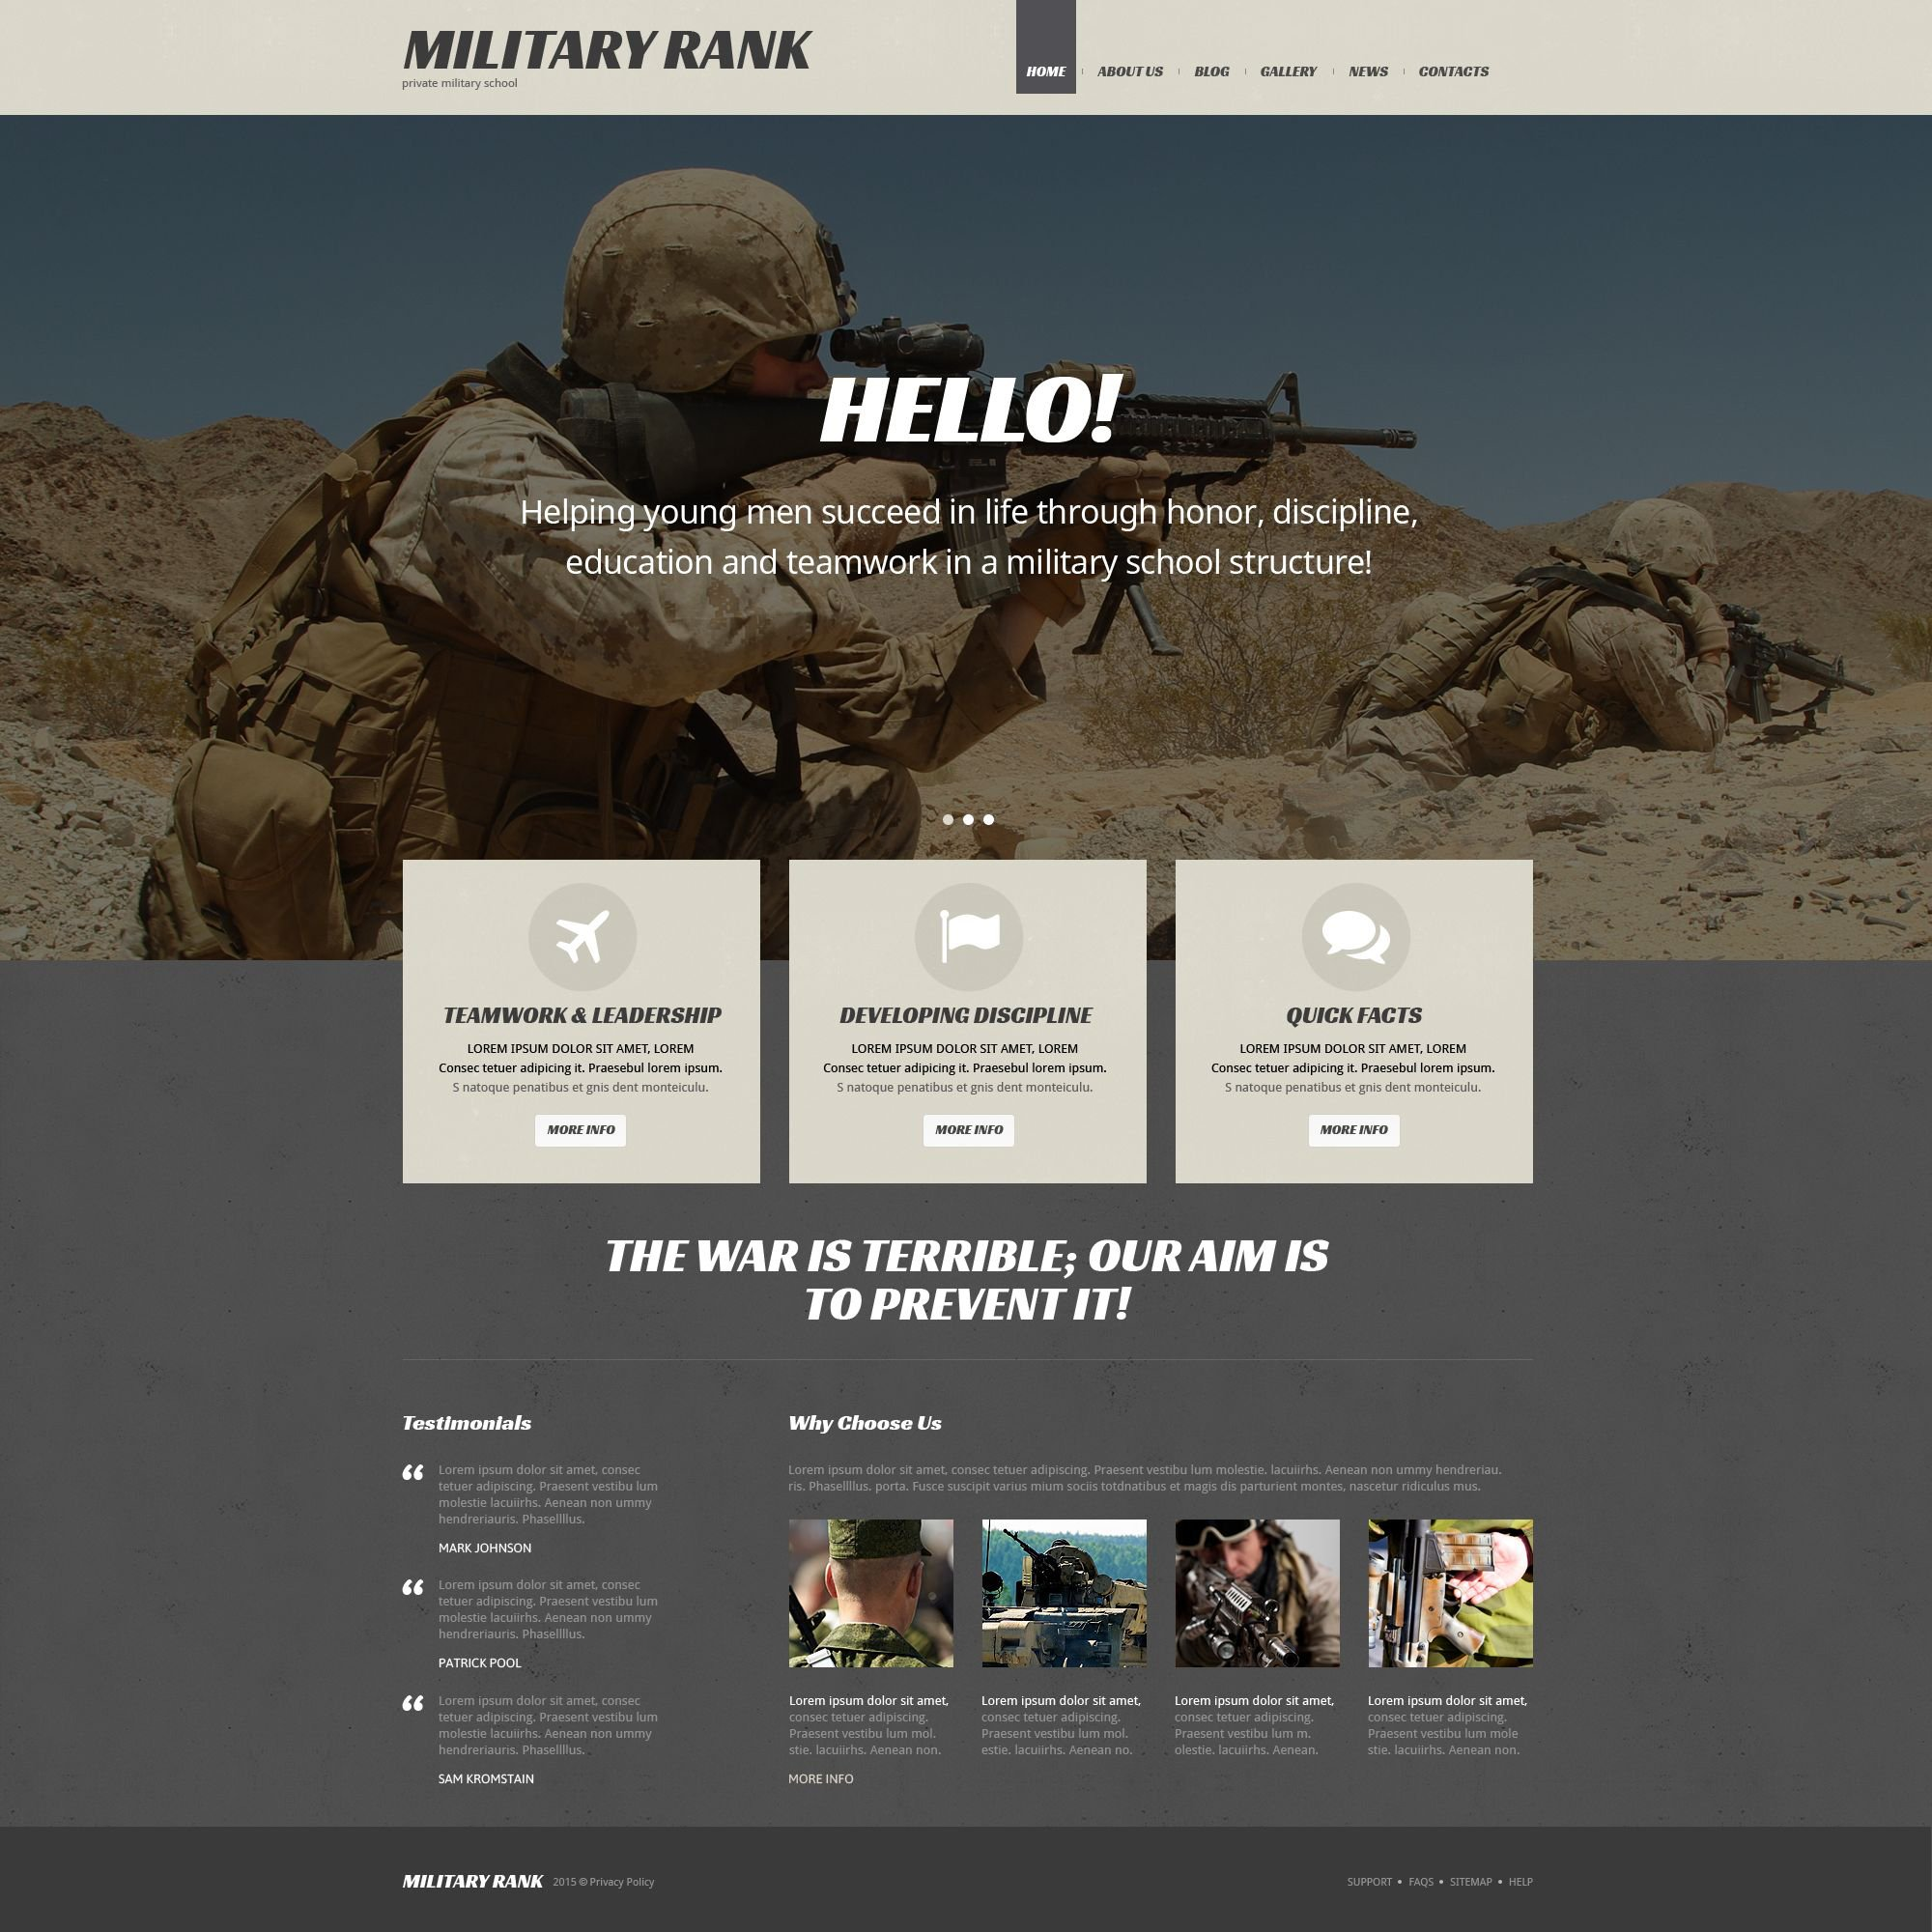 The Military Rank WordPress Design 54035, one of the best WordPress themes of its kind (military, most popular), also known as military rank WordPress template, services WordPress template, rank WordPress template, integrity WordPress template, dignity WordPress template, adherence WordPress template, navy WordPress template, marine WordPress template, air force WordPress template, guard WordPress template, recruits WordPress template, training WordPress template, professionals WordPress template, community WordPress template, soldiers WordPress template, weapon WordPress template, guns WordPress template, technologies WordPress template, vacancies career WordPress template, officer WordPress template, defense WordPress template, veteran WordPress template, enthusiast WordPress template, ribbons WordPress template, medals WordPress template, protection WordPress template, war WordPress template, victory WordPress template, academy WordPress template, studen and related with military rank, services, rank, integrity, dignity, adherence, navy, marine, air force, guard, recruits, training, professionals, community, soldiers, weapon, guns, technologies, vacancies career, officer, defense, veteran, enthusiast, ribbons, medals, protection, war, victory, academy, studen, etc.